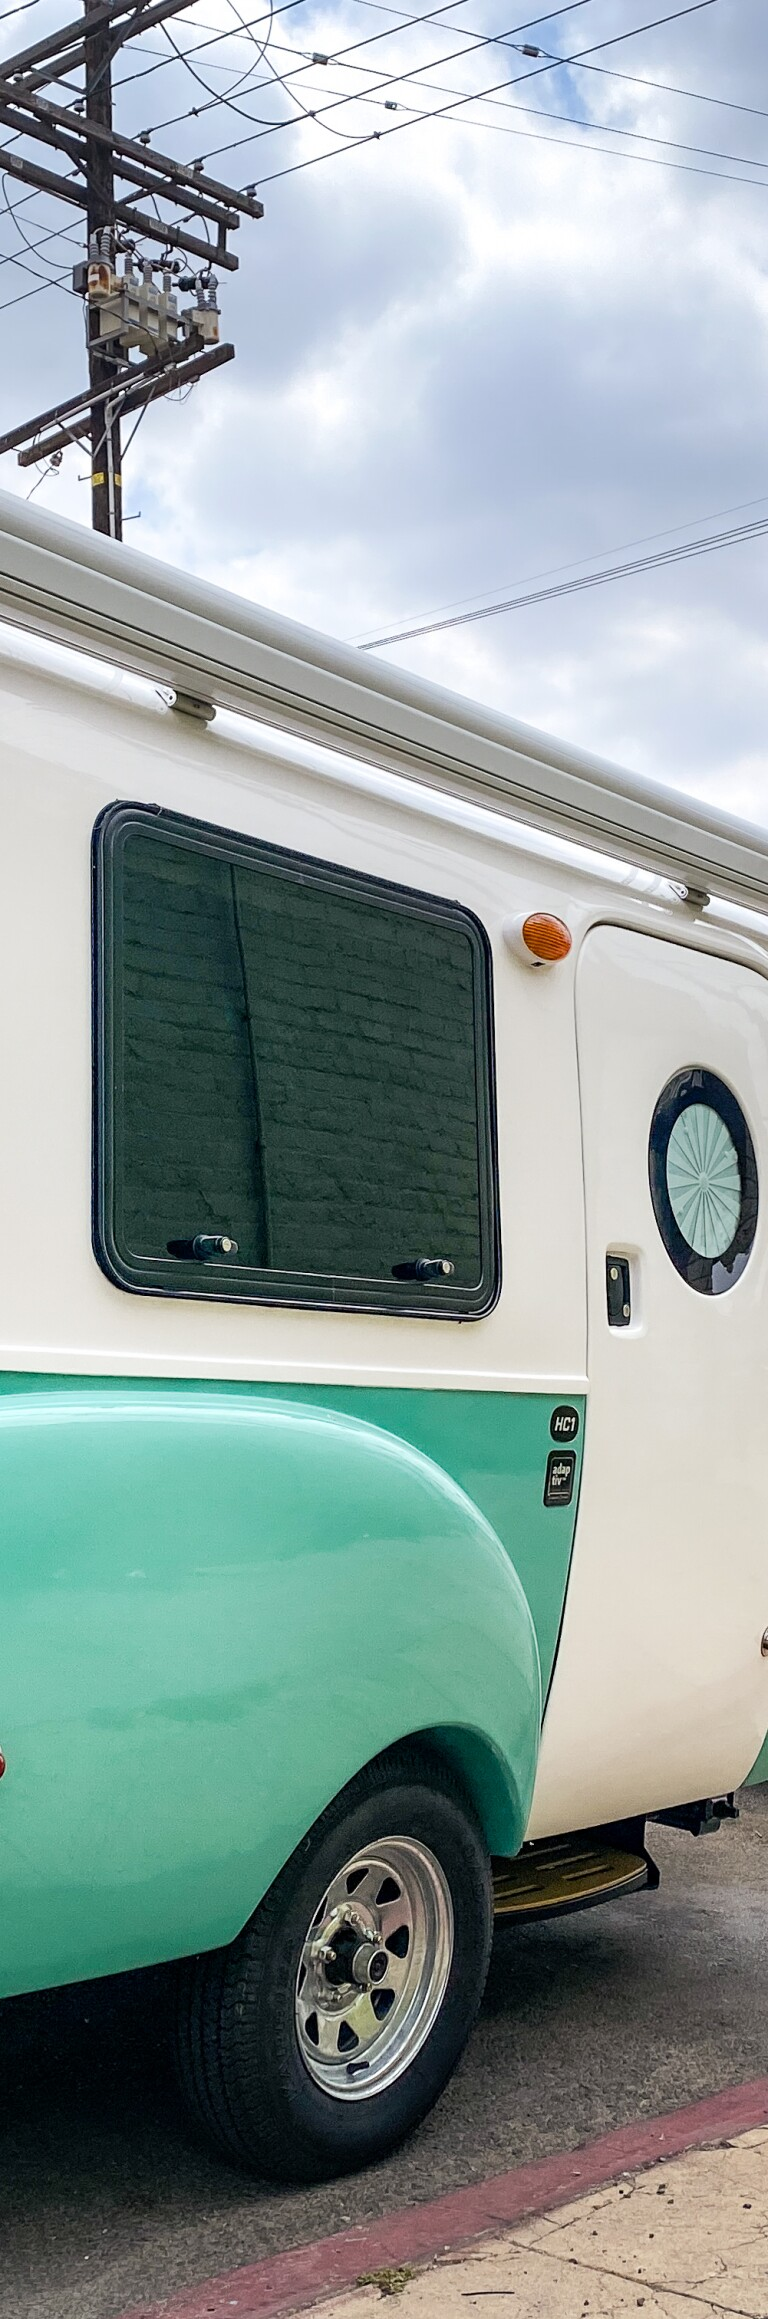 Pichardo's Mobile Art Lab, a teal and white trailer, is parked on the side of the road.